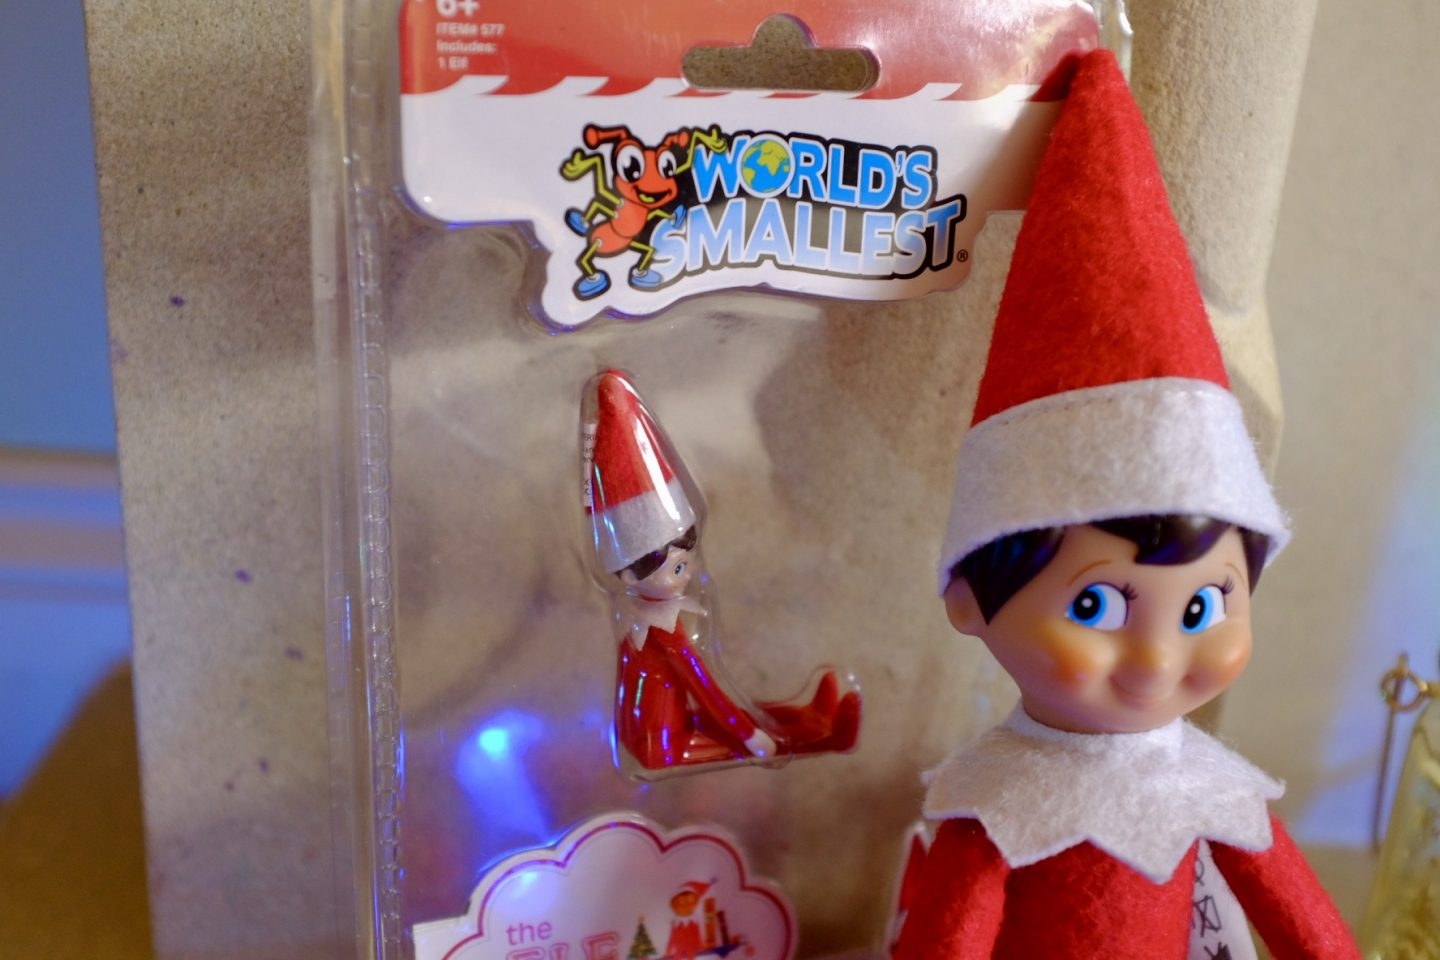 The World's Smallest Ef - Elf on the Shelf